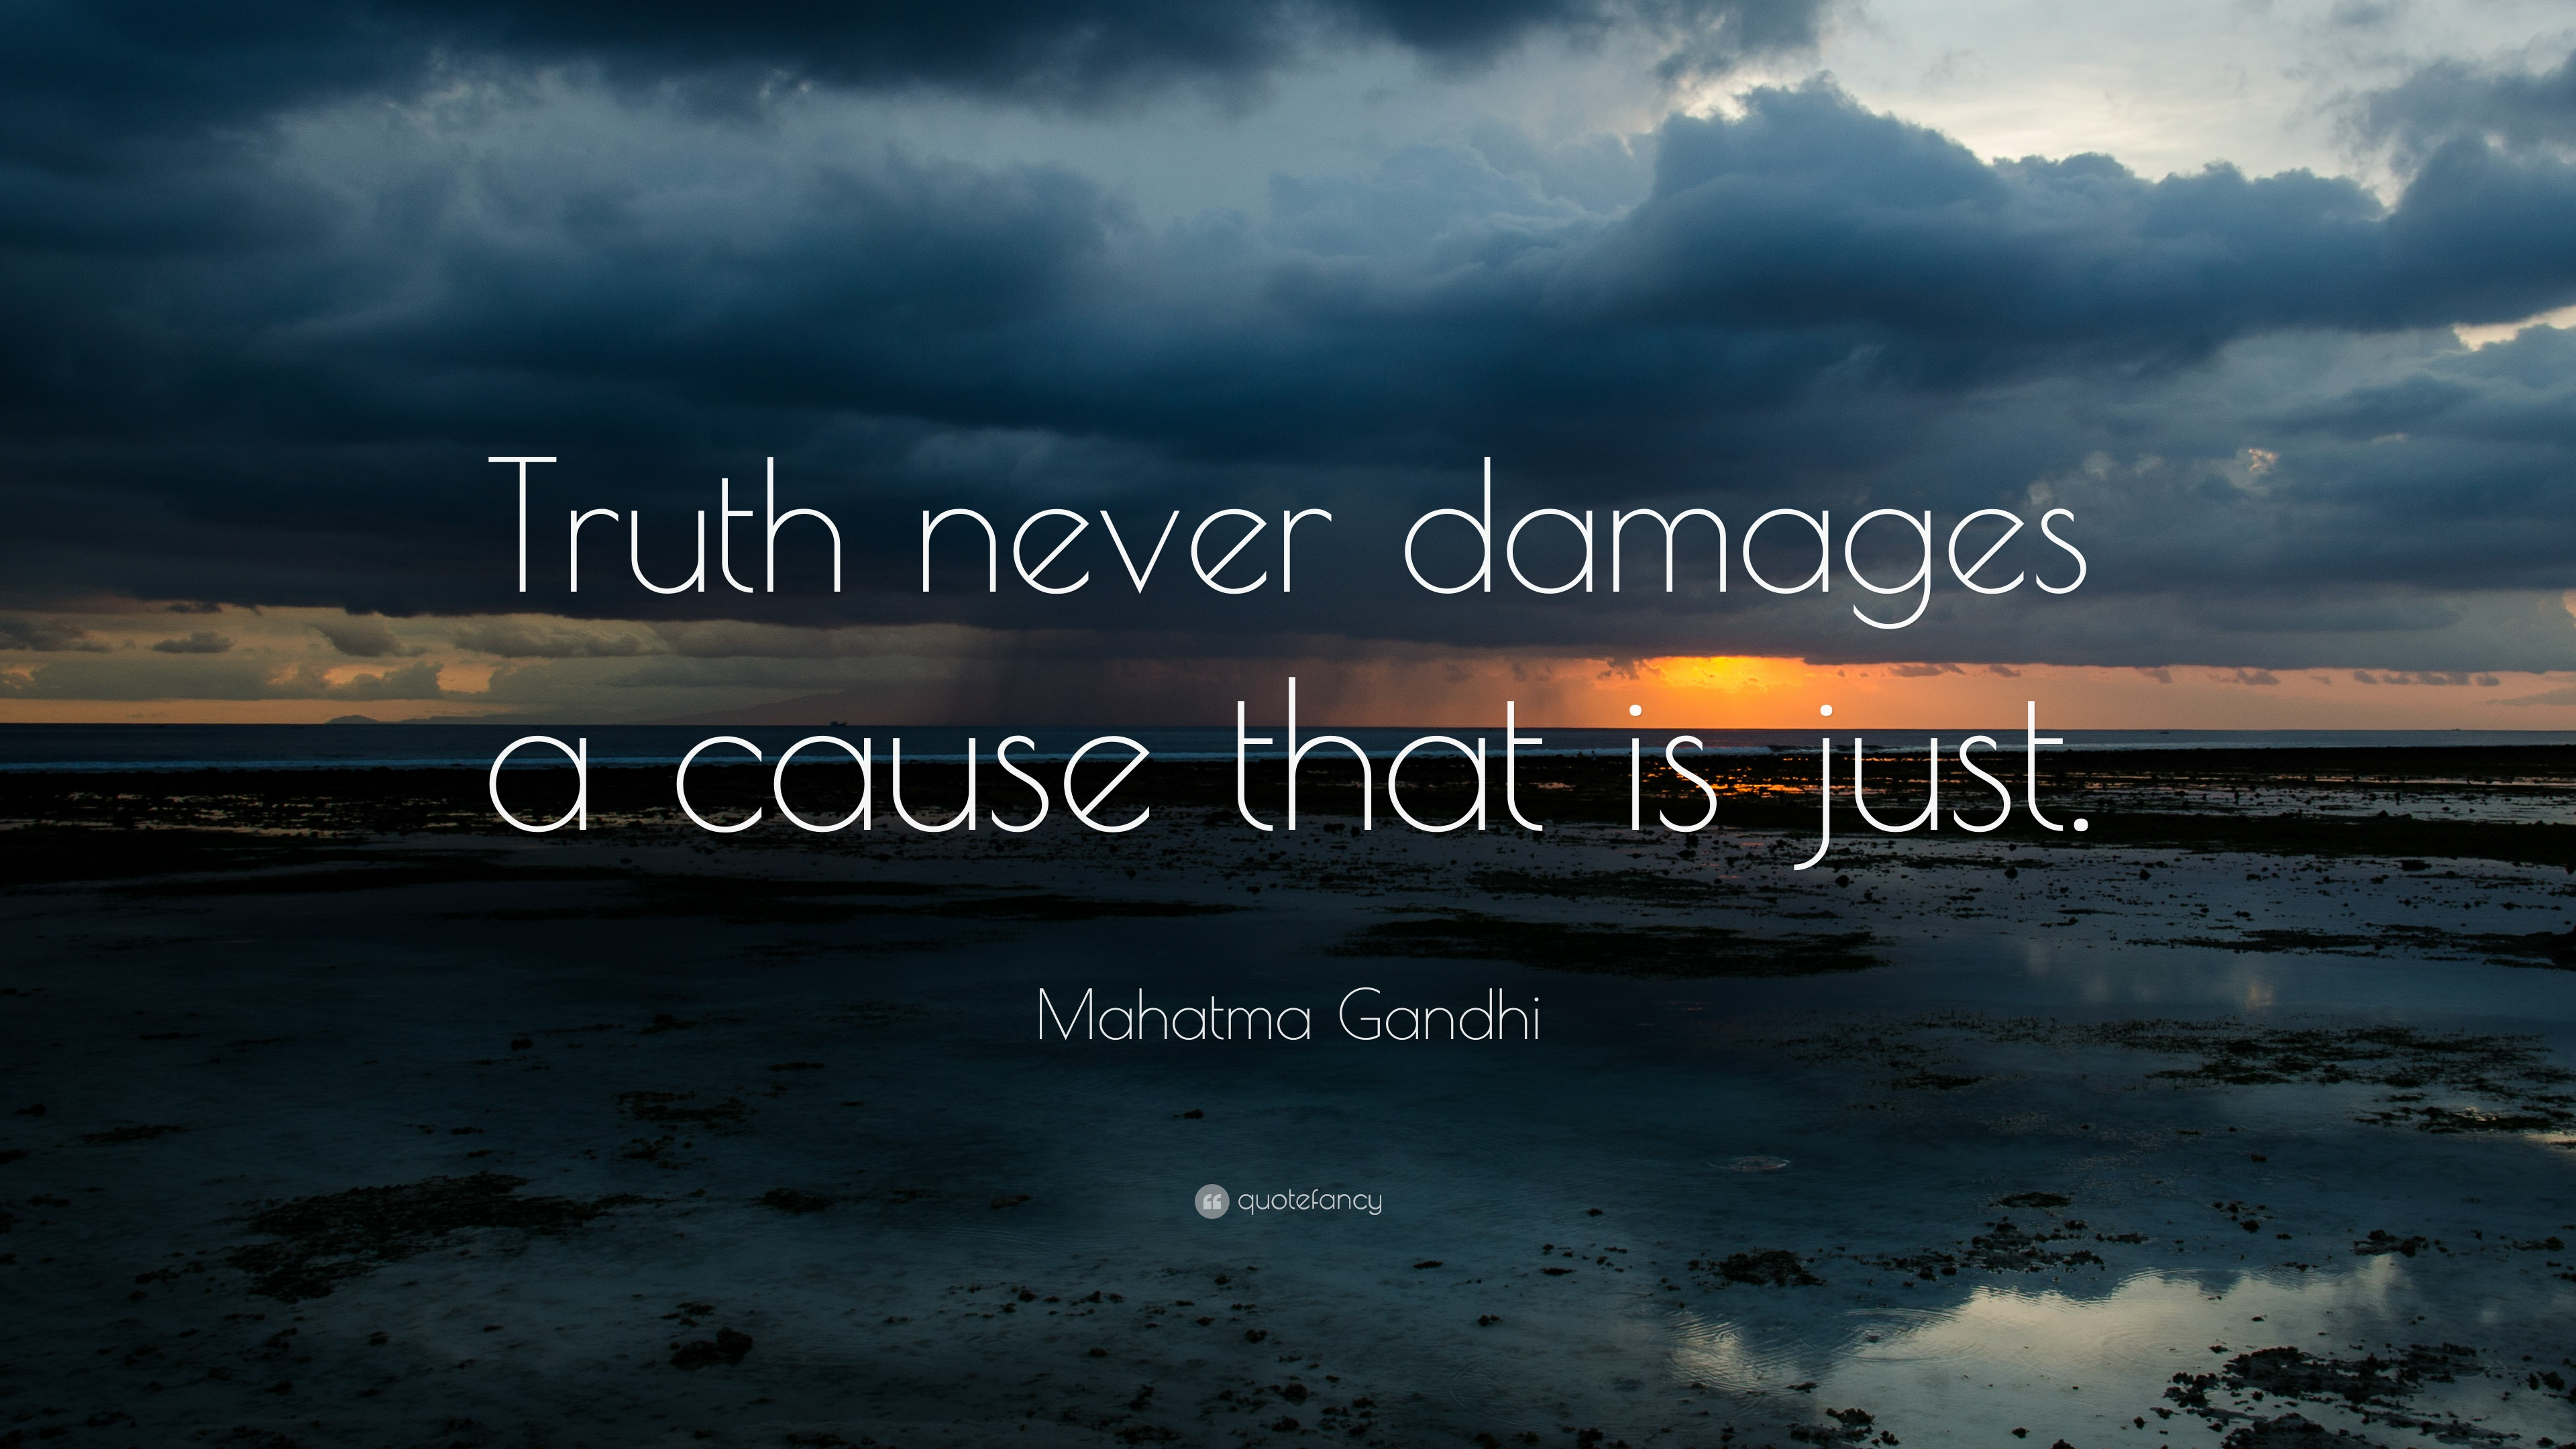 Mahatma Gandhi Quote: Truth never damages a cause that is just.